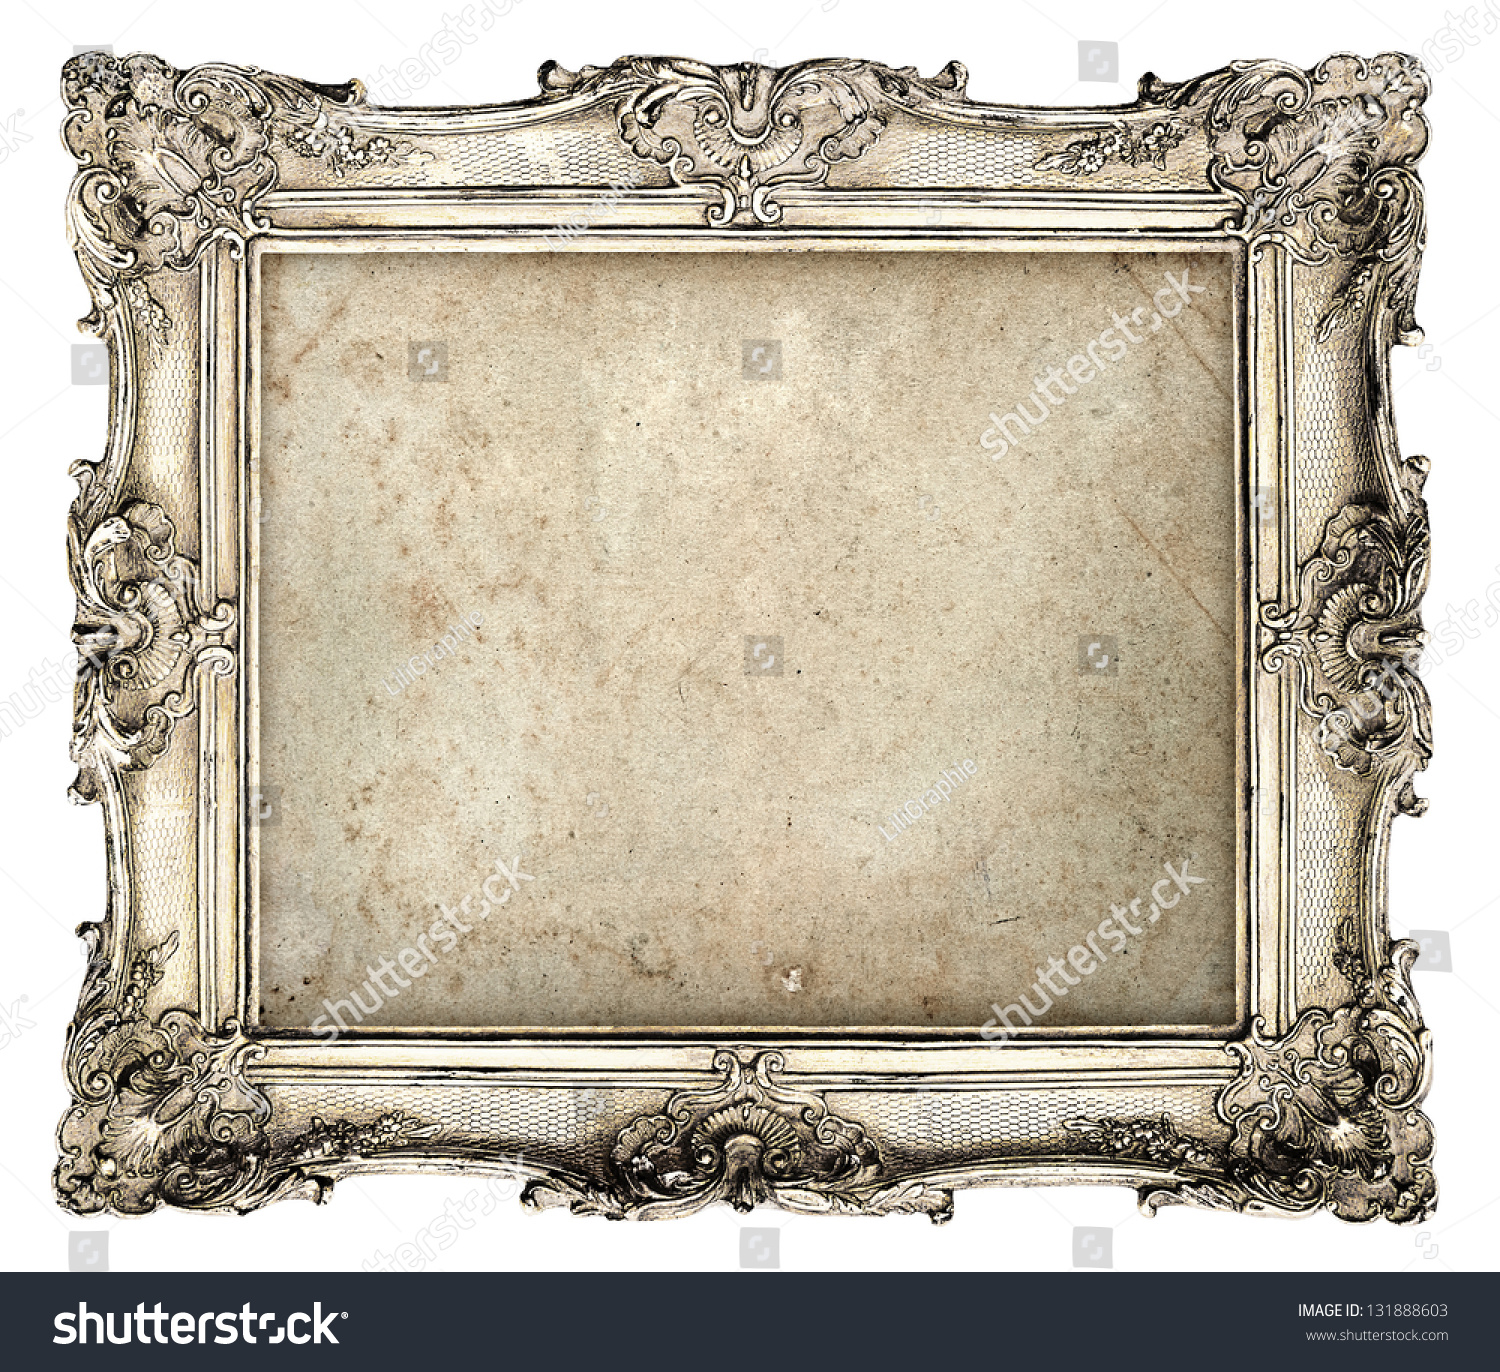 old silver frame empty grunge canvas stock photo 131888603. Black Bedroom Furniture Sets. Home Design Ideas